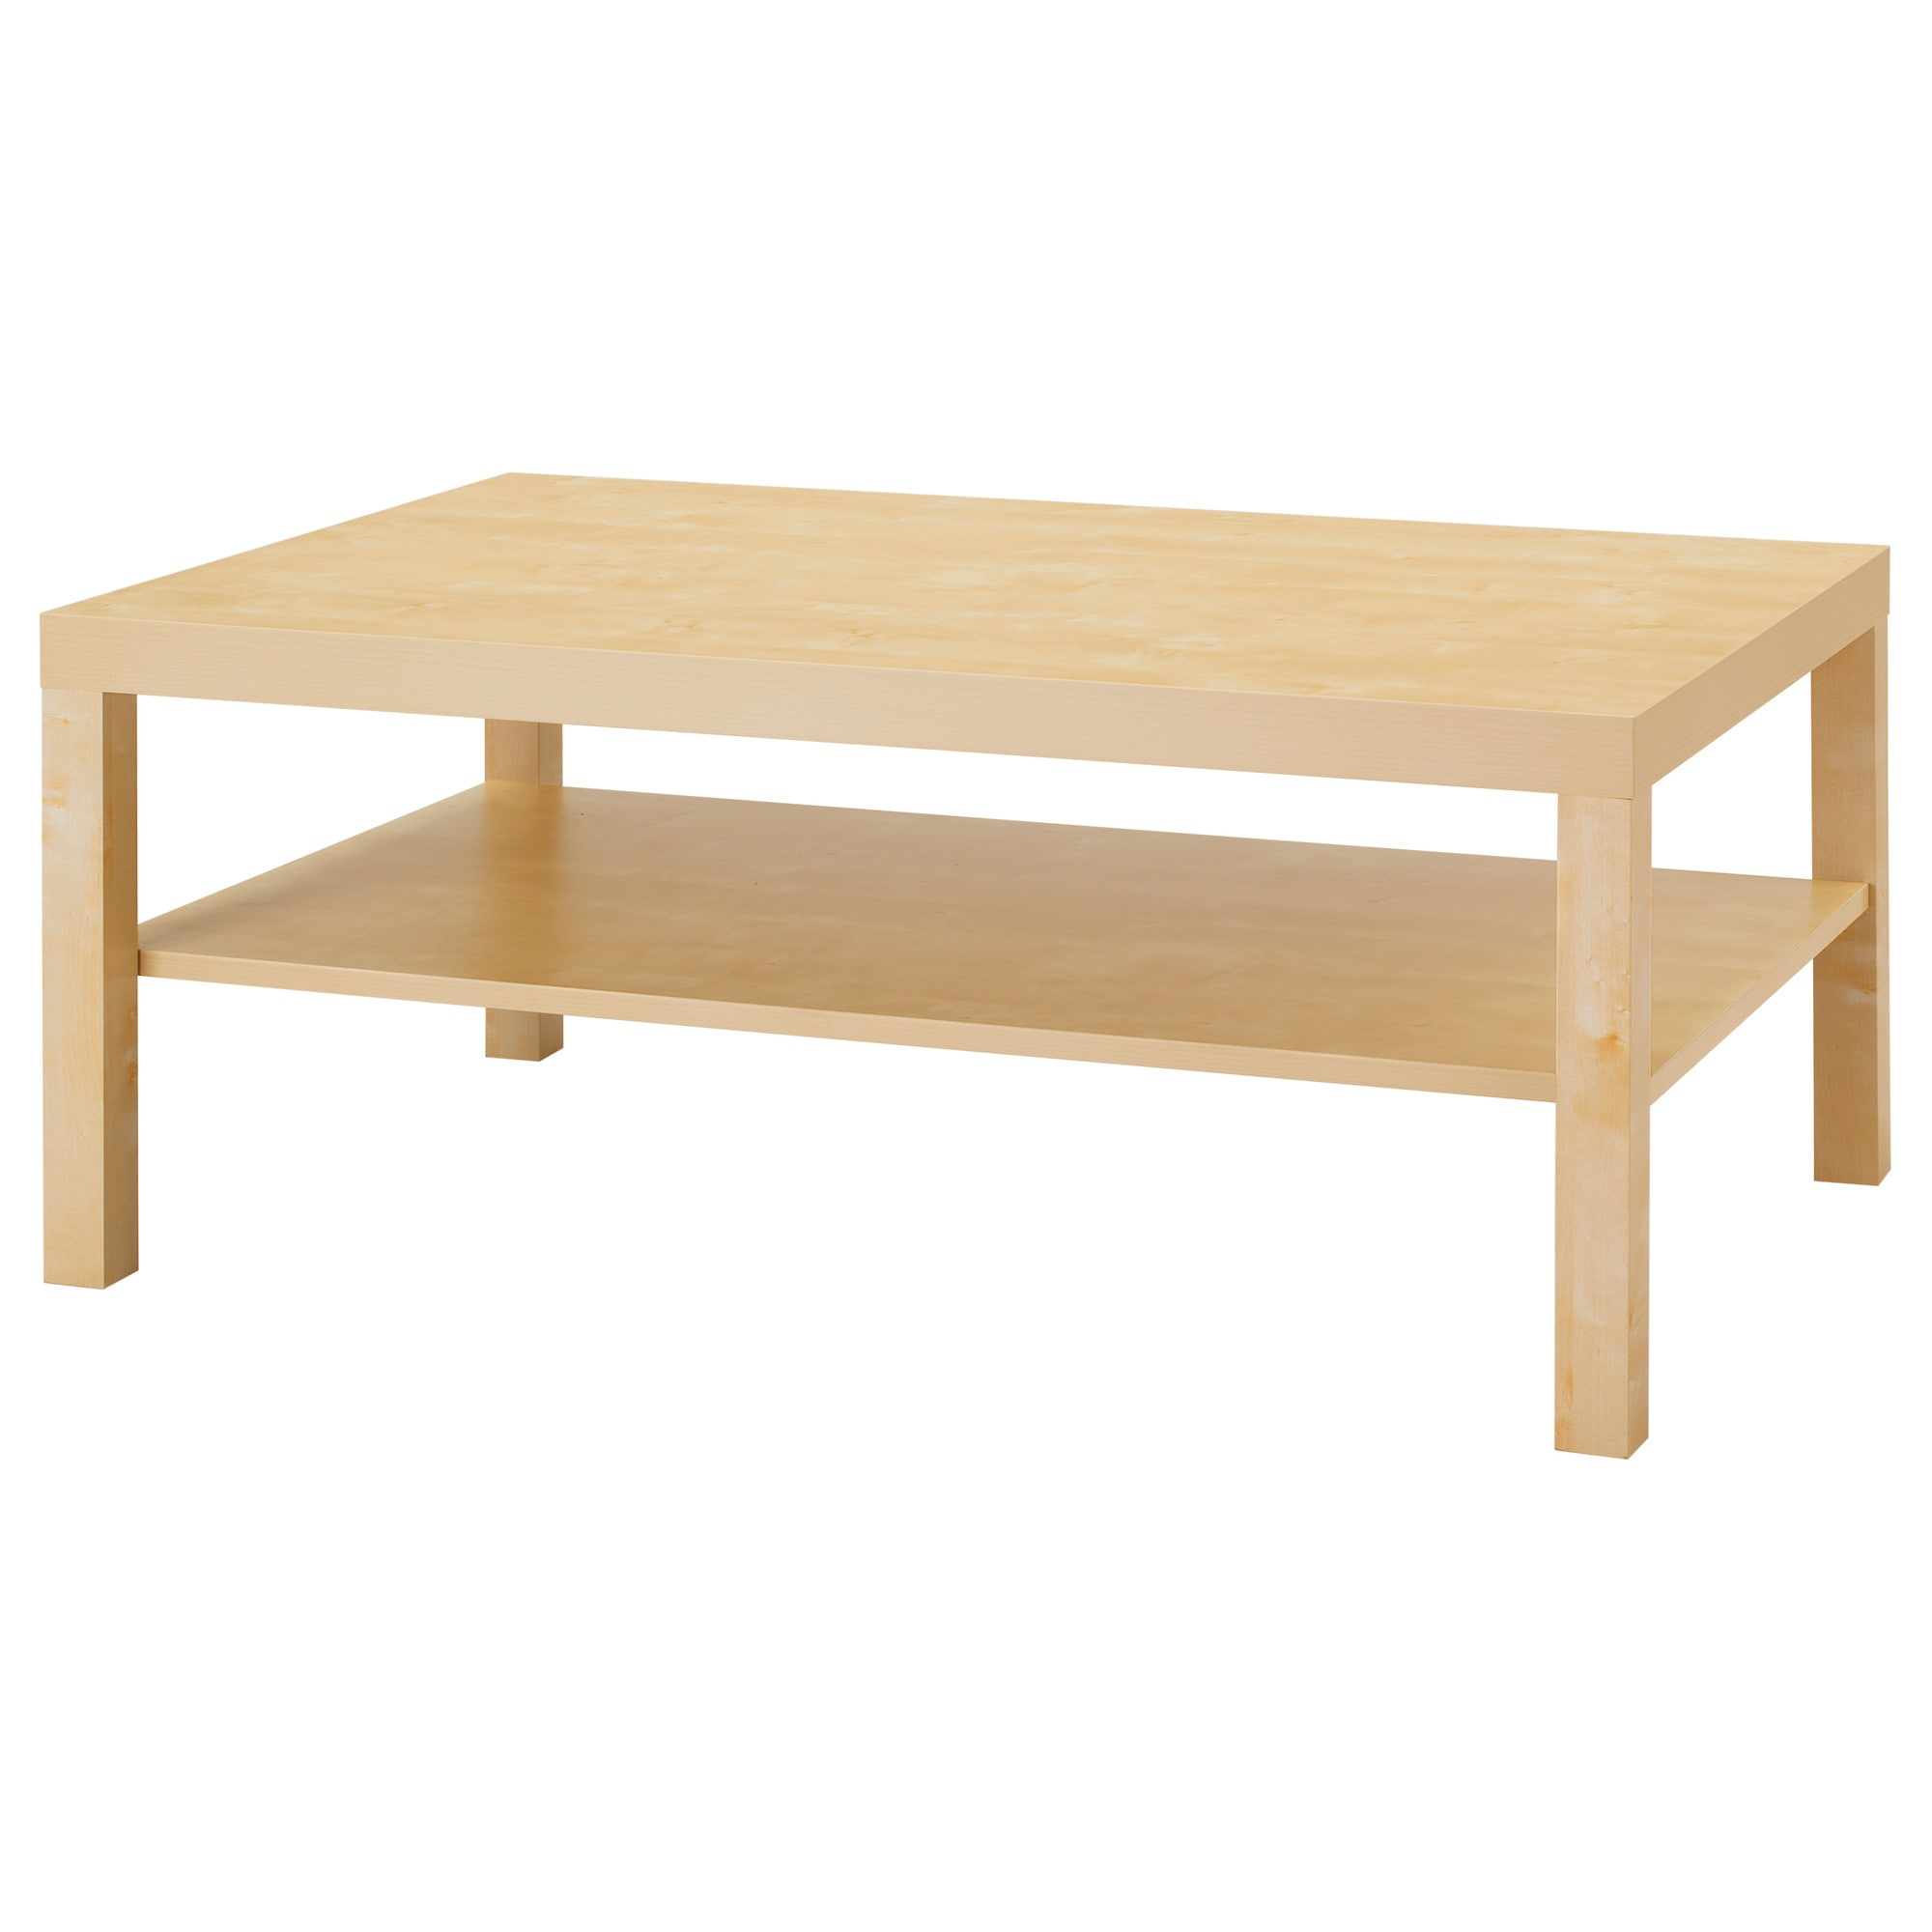 lack coffee table - birch effect - ikea